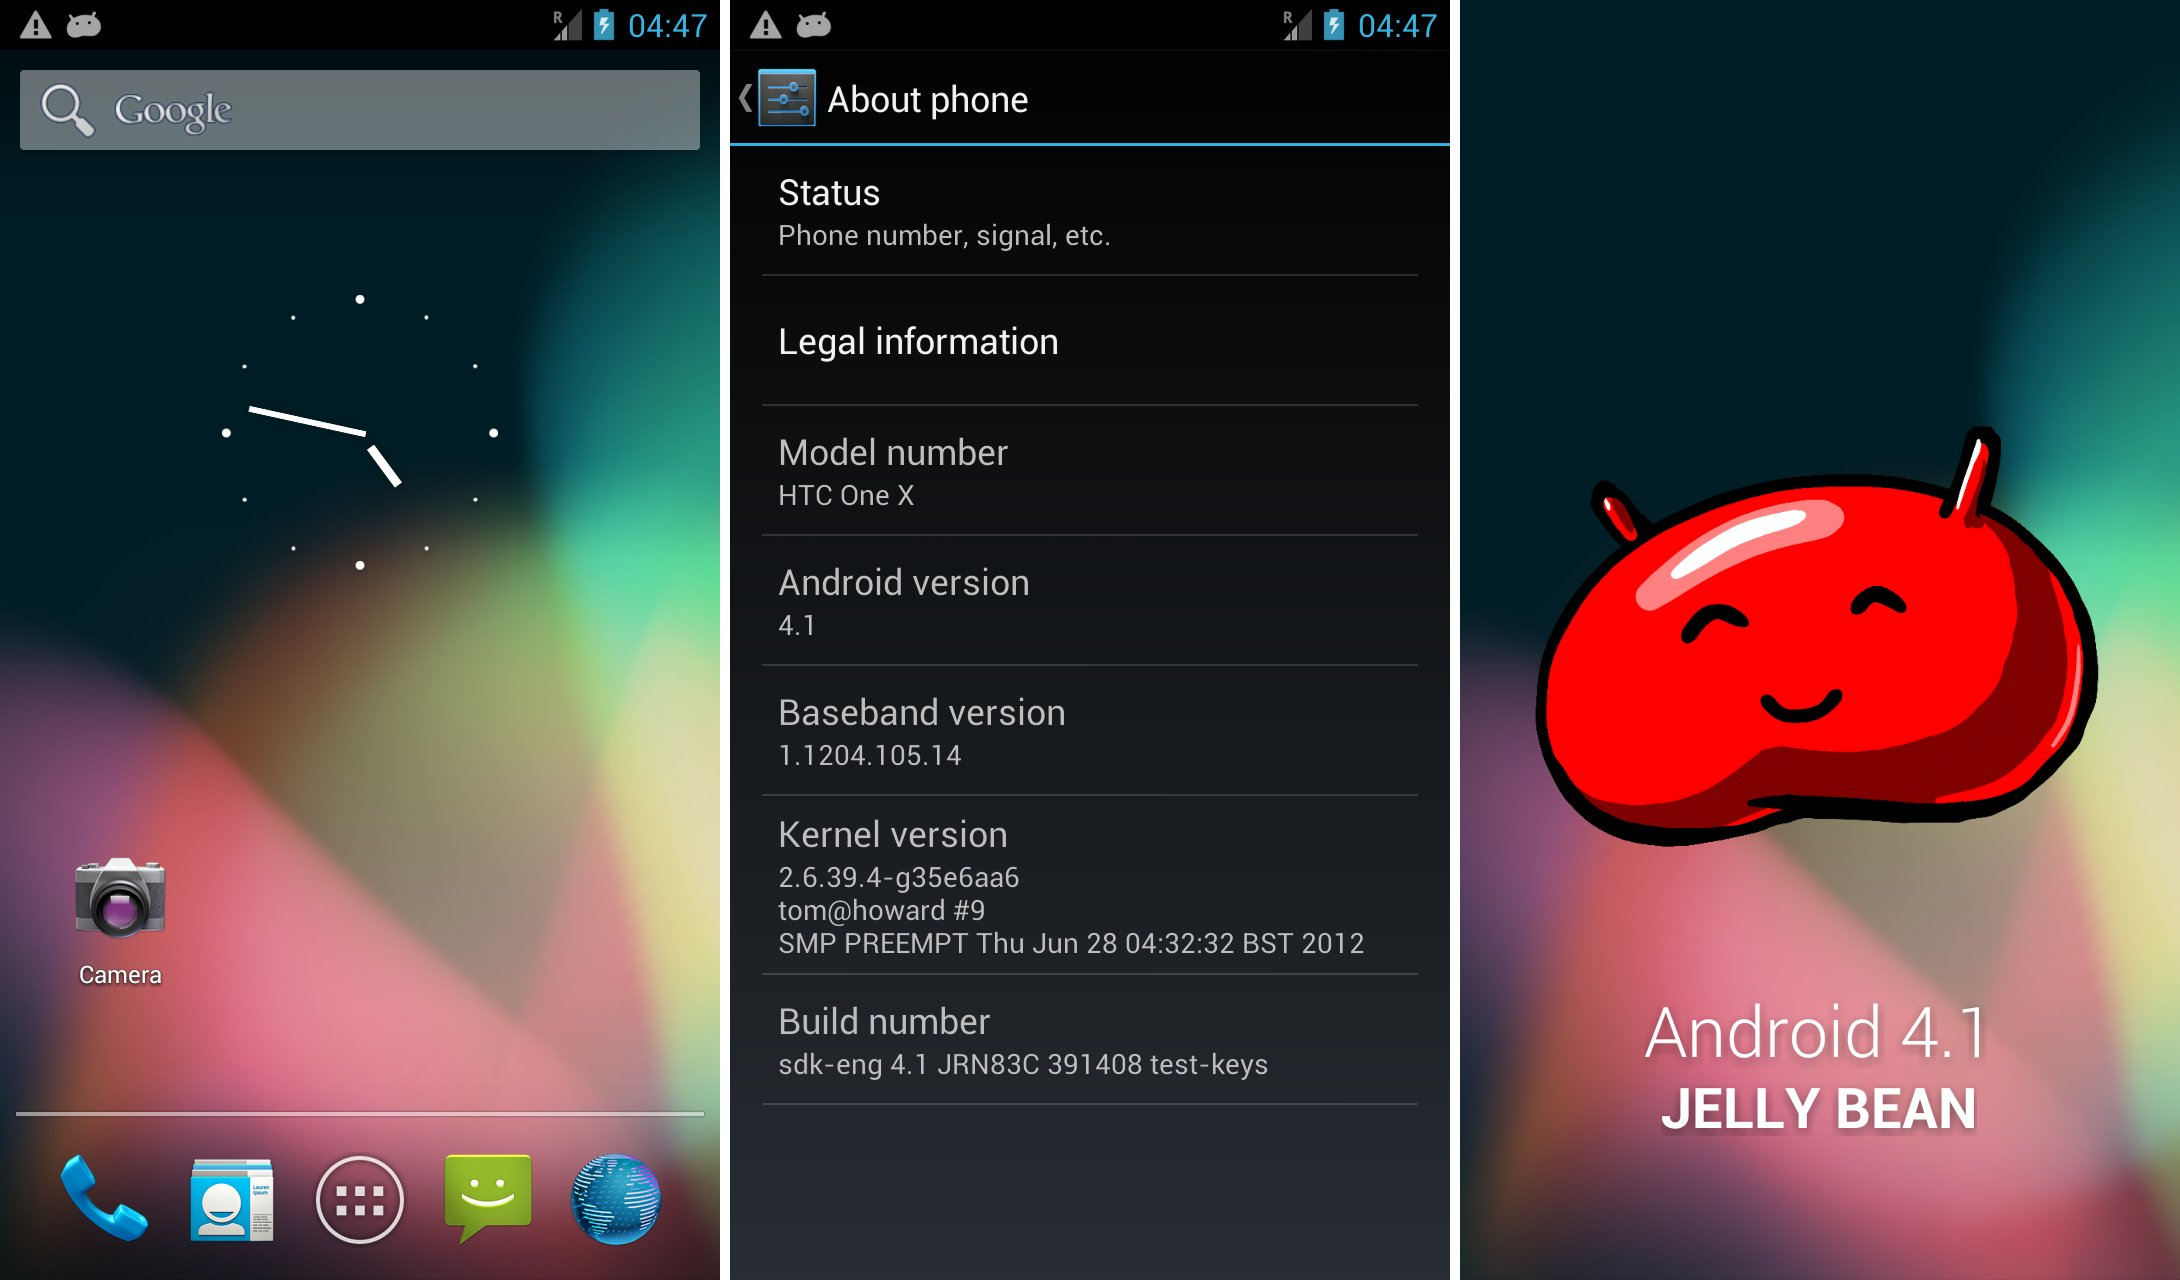 Android-4.1-Jellybean-Rolling-out-to-All-GSM-Galaxy-Nexus-Devices-Poto-by-Theandroidsoul